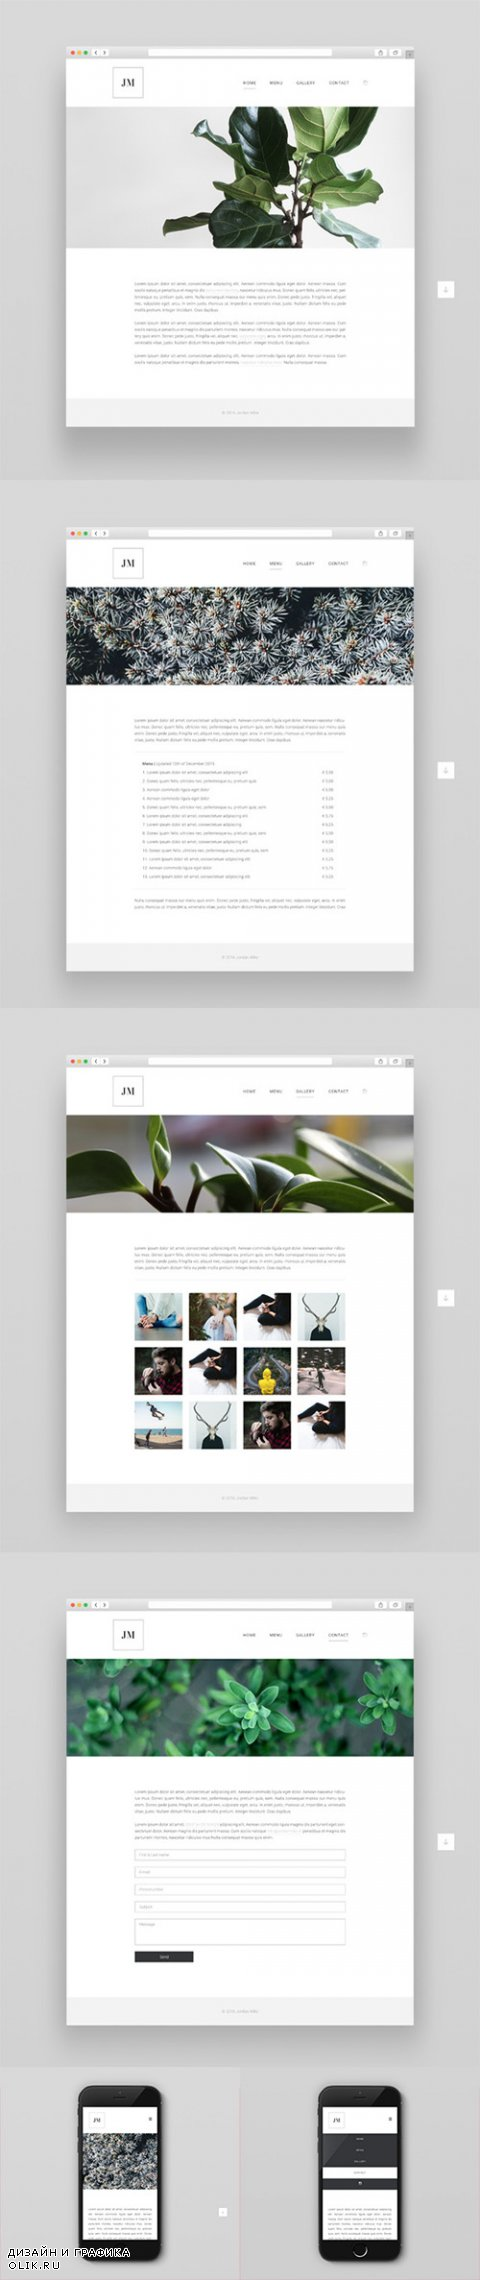 Complete Website Theme, HTML CSS PSD - CrеаtivеМаrкеt 531499